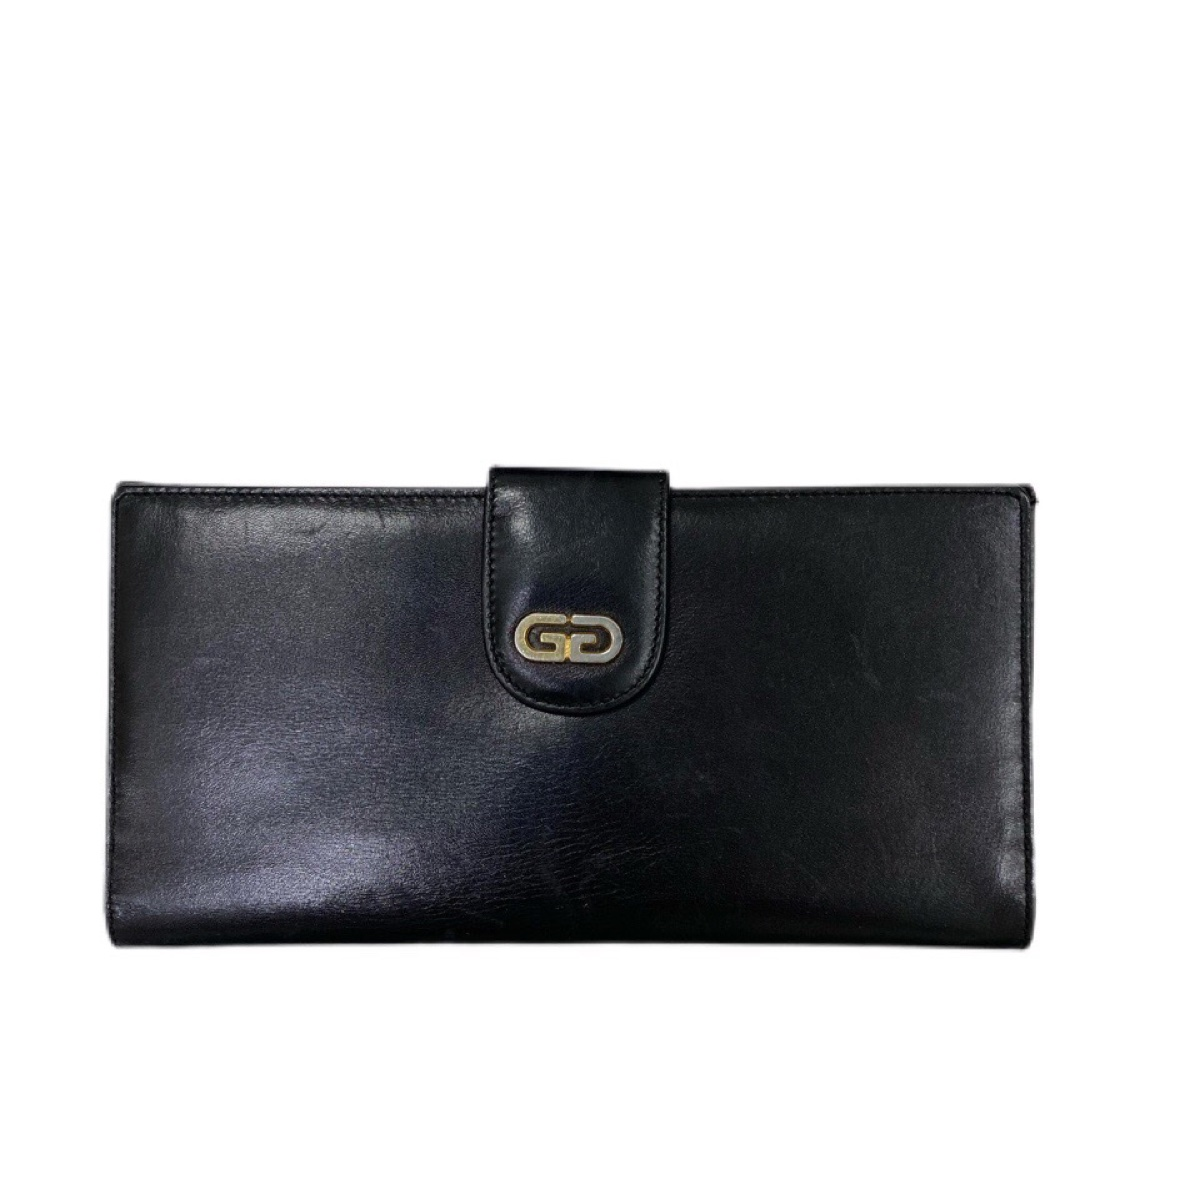 Gucci vintage black long wallet/purse